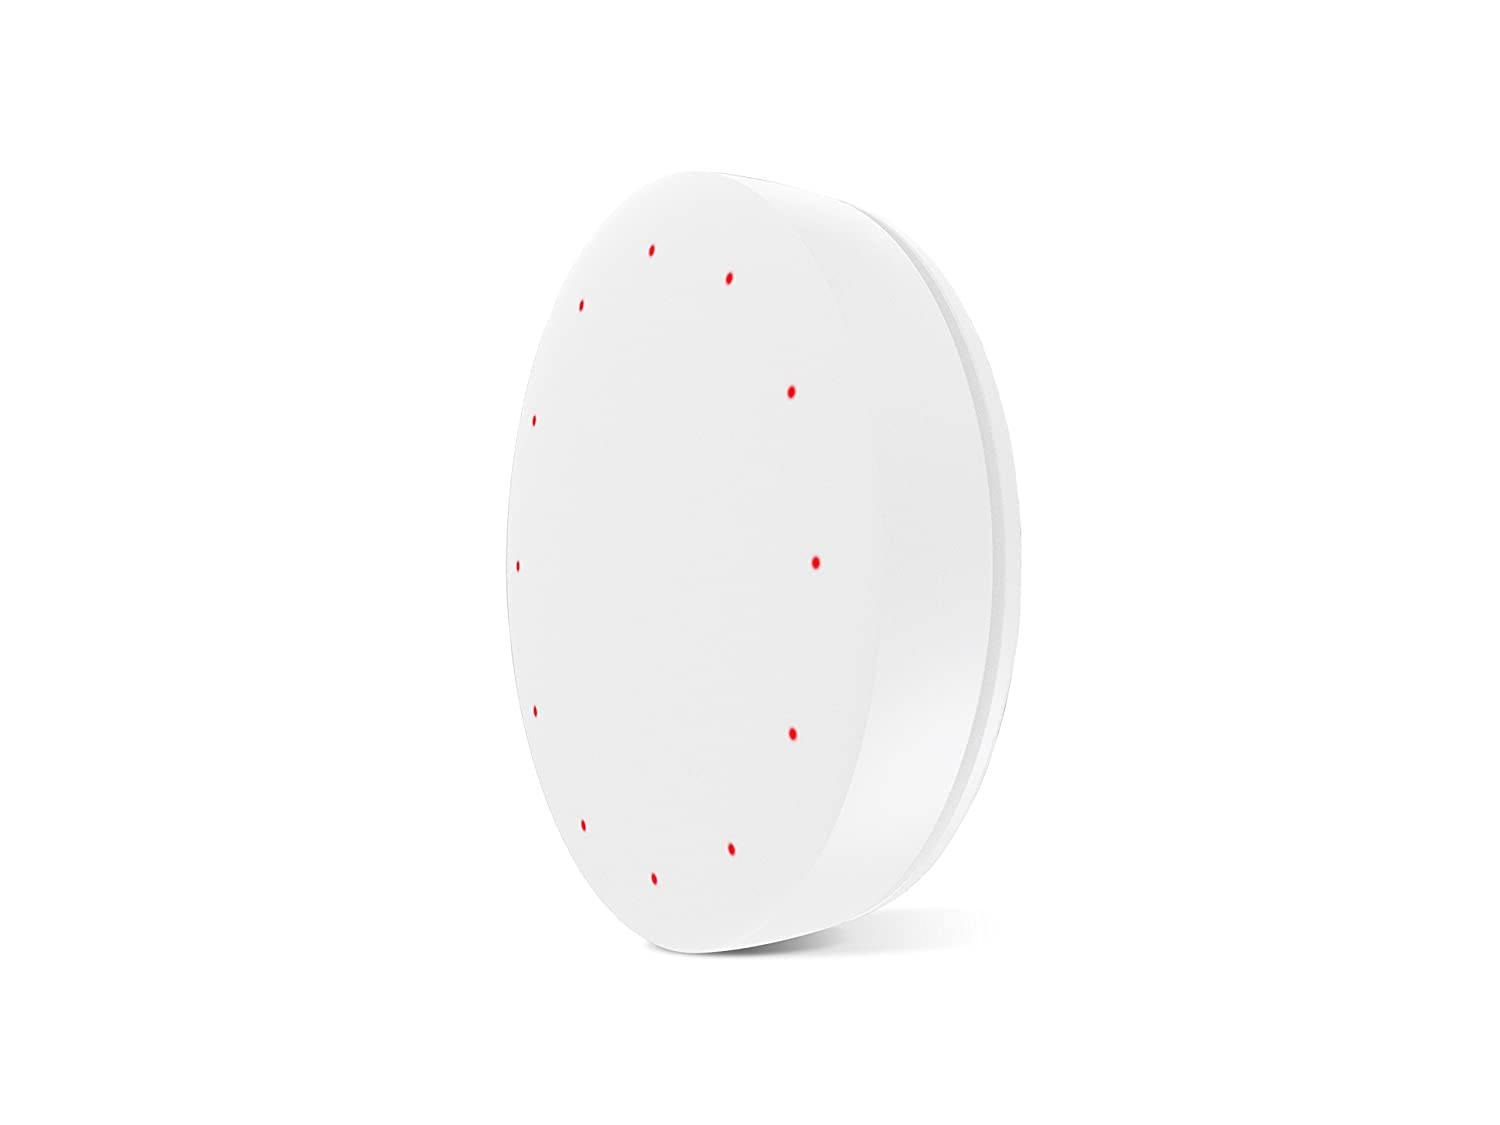 White S79F00BZ Misfit Wearables Flash Fitness and Sleep Monitor